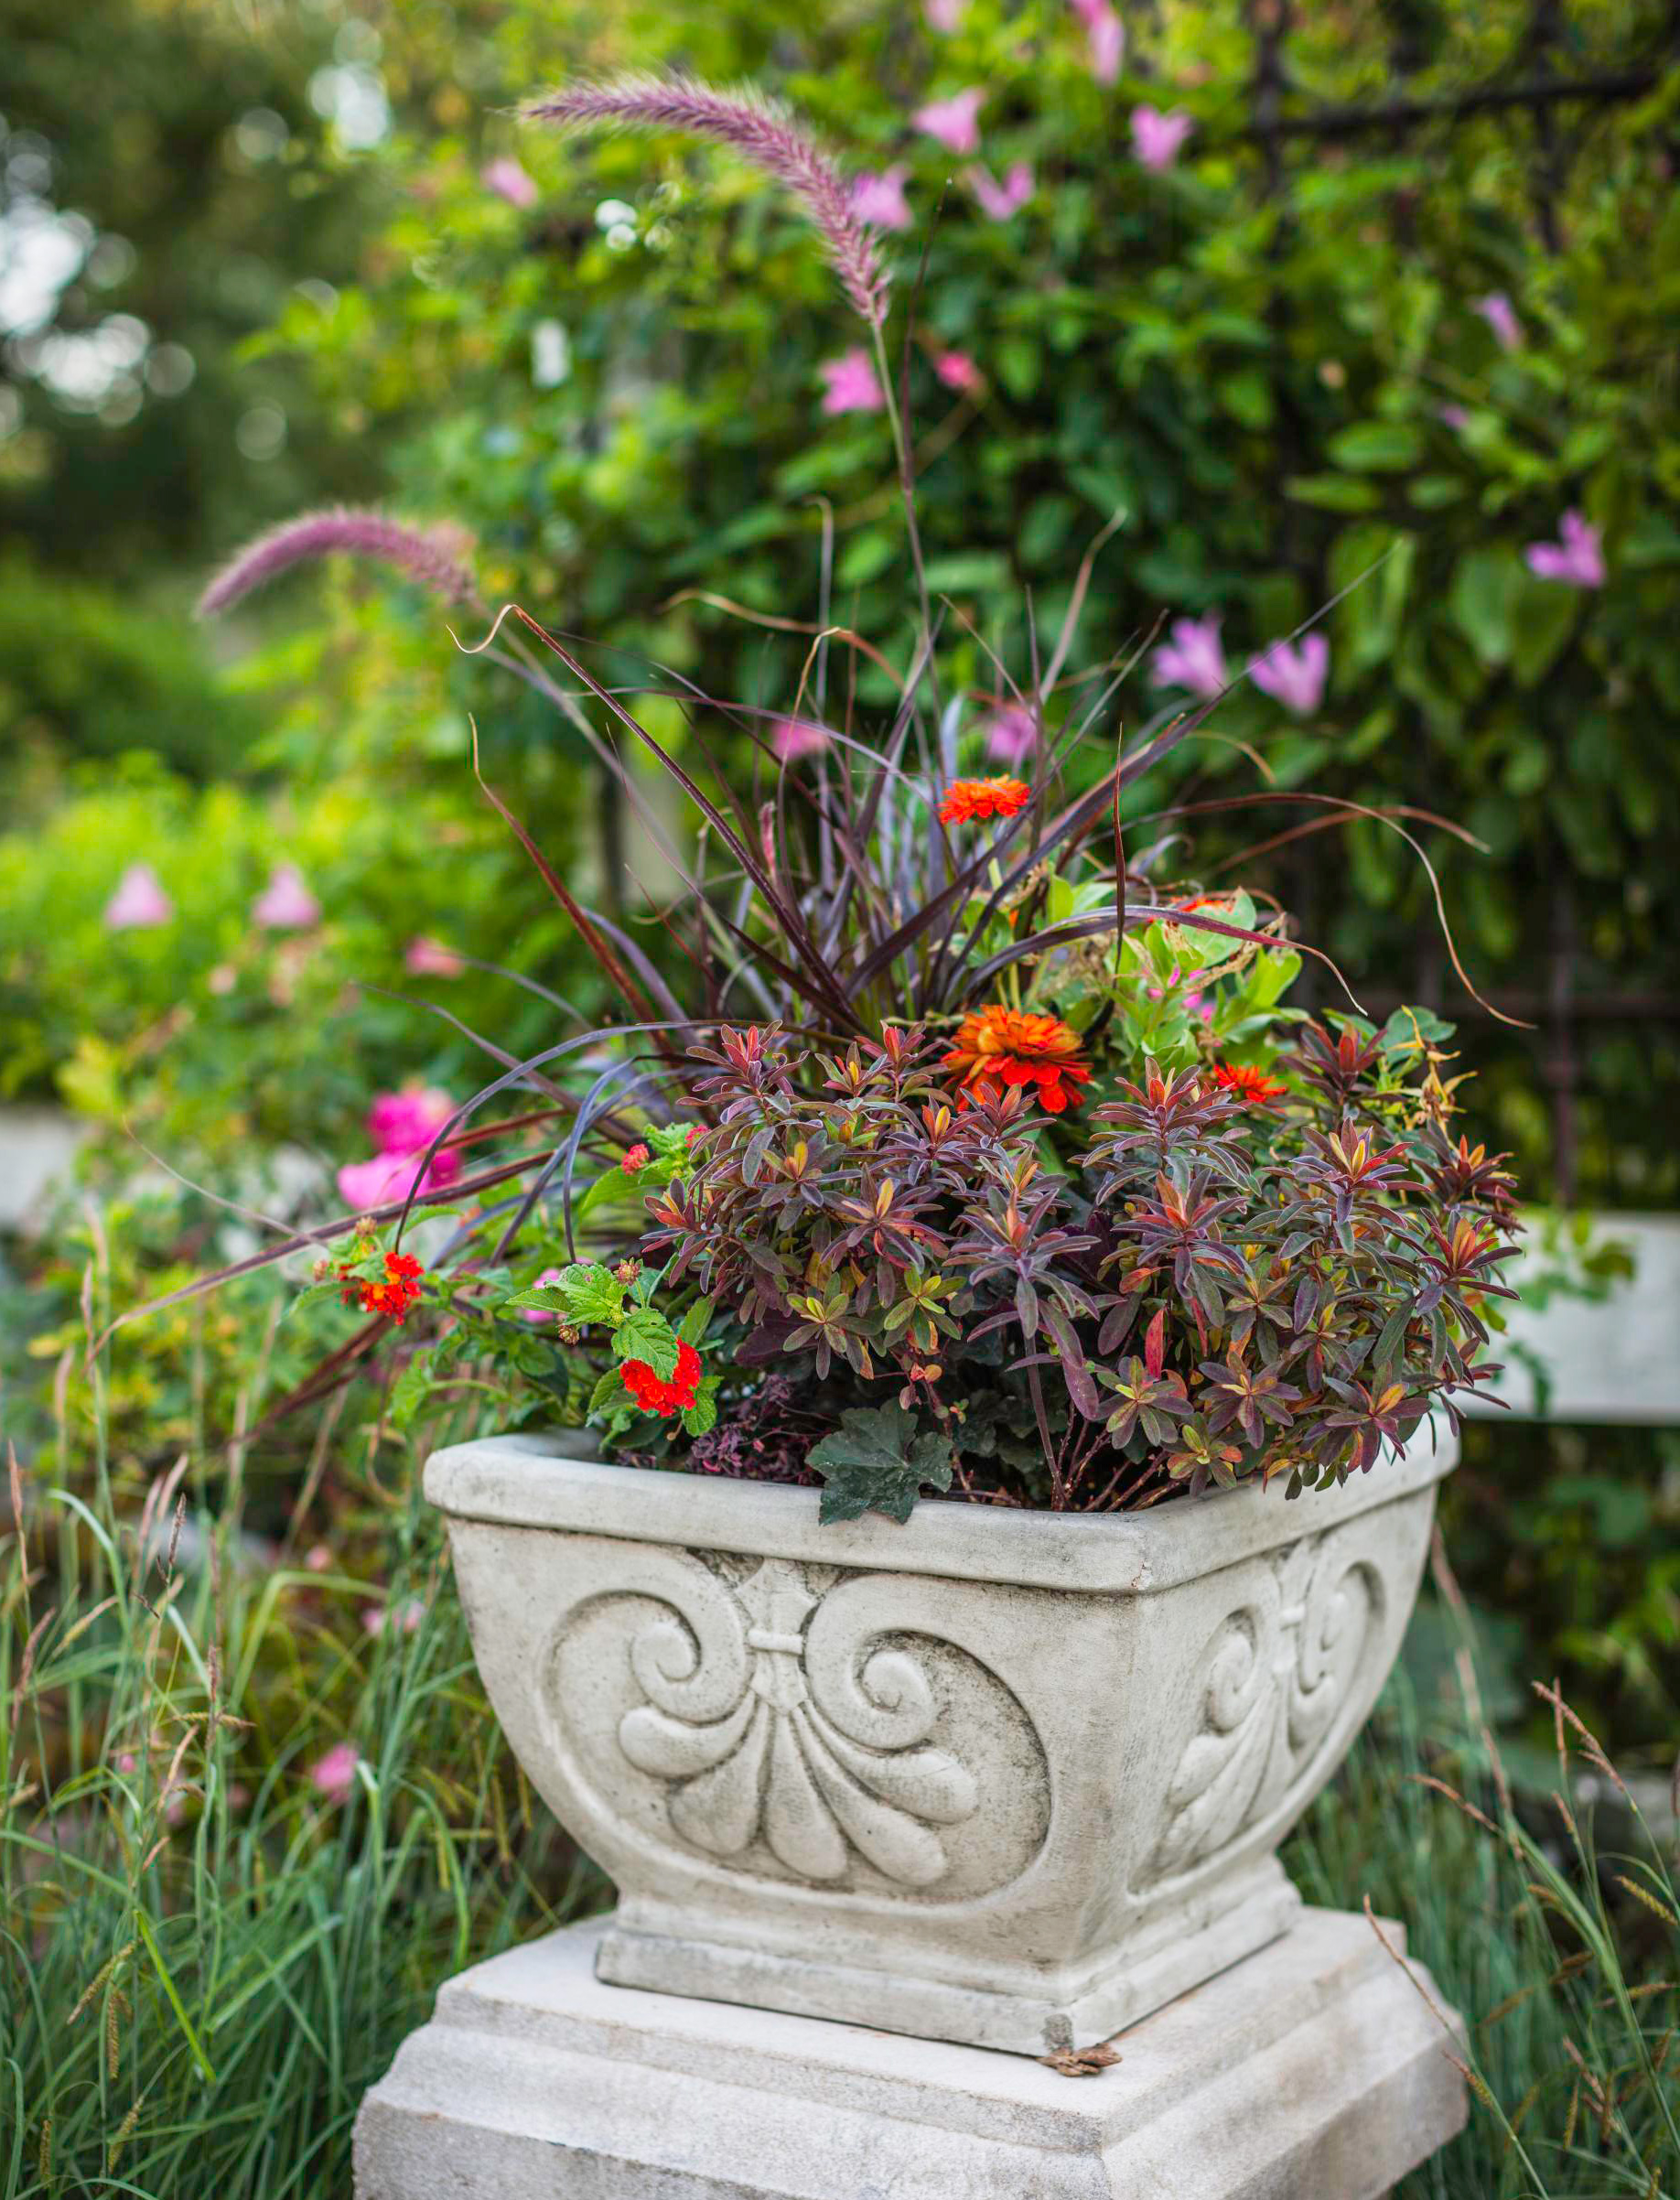 More on container gardens